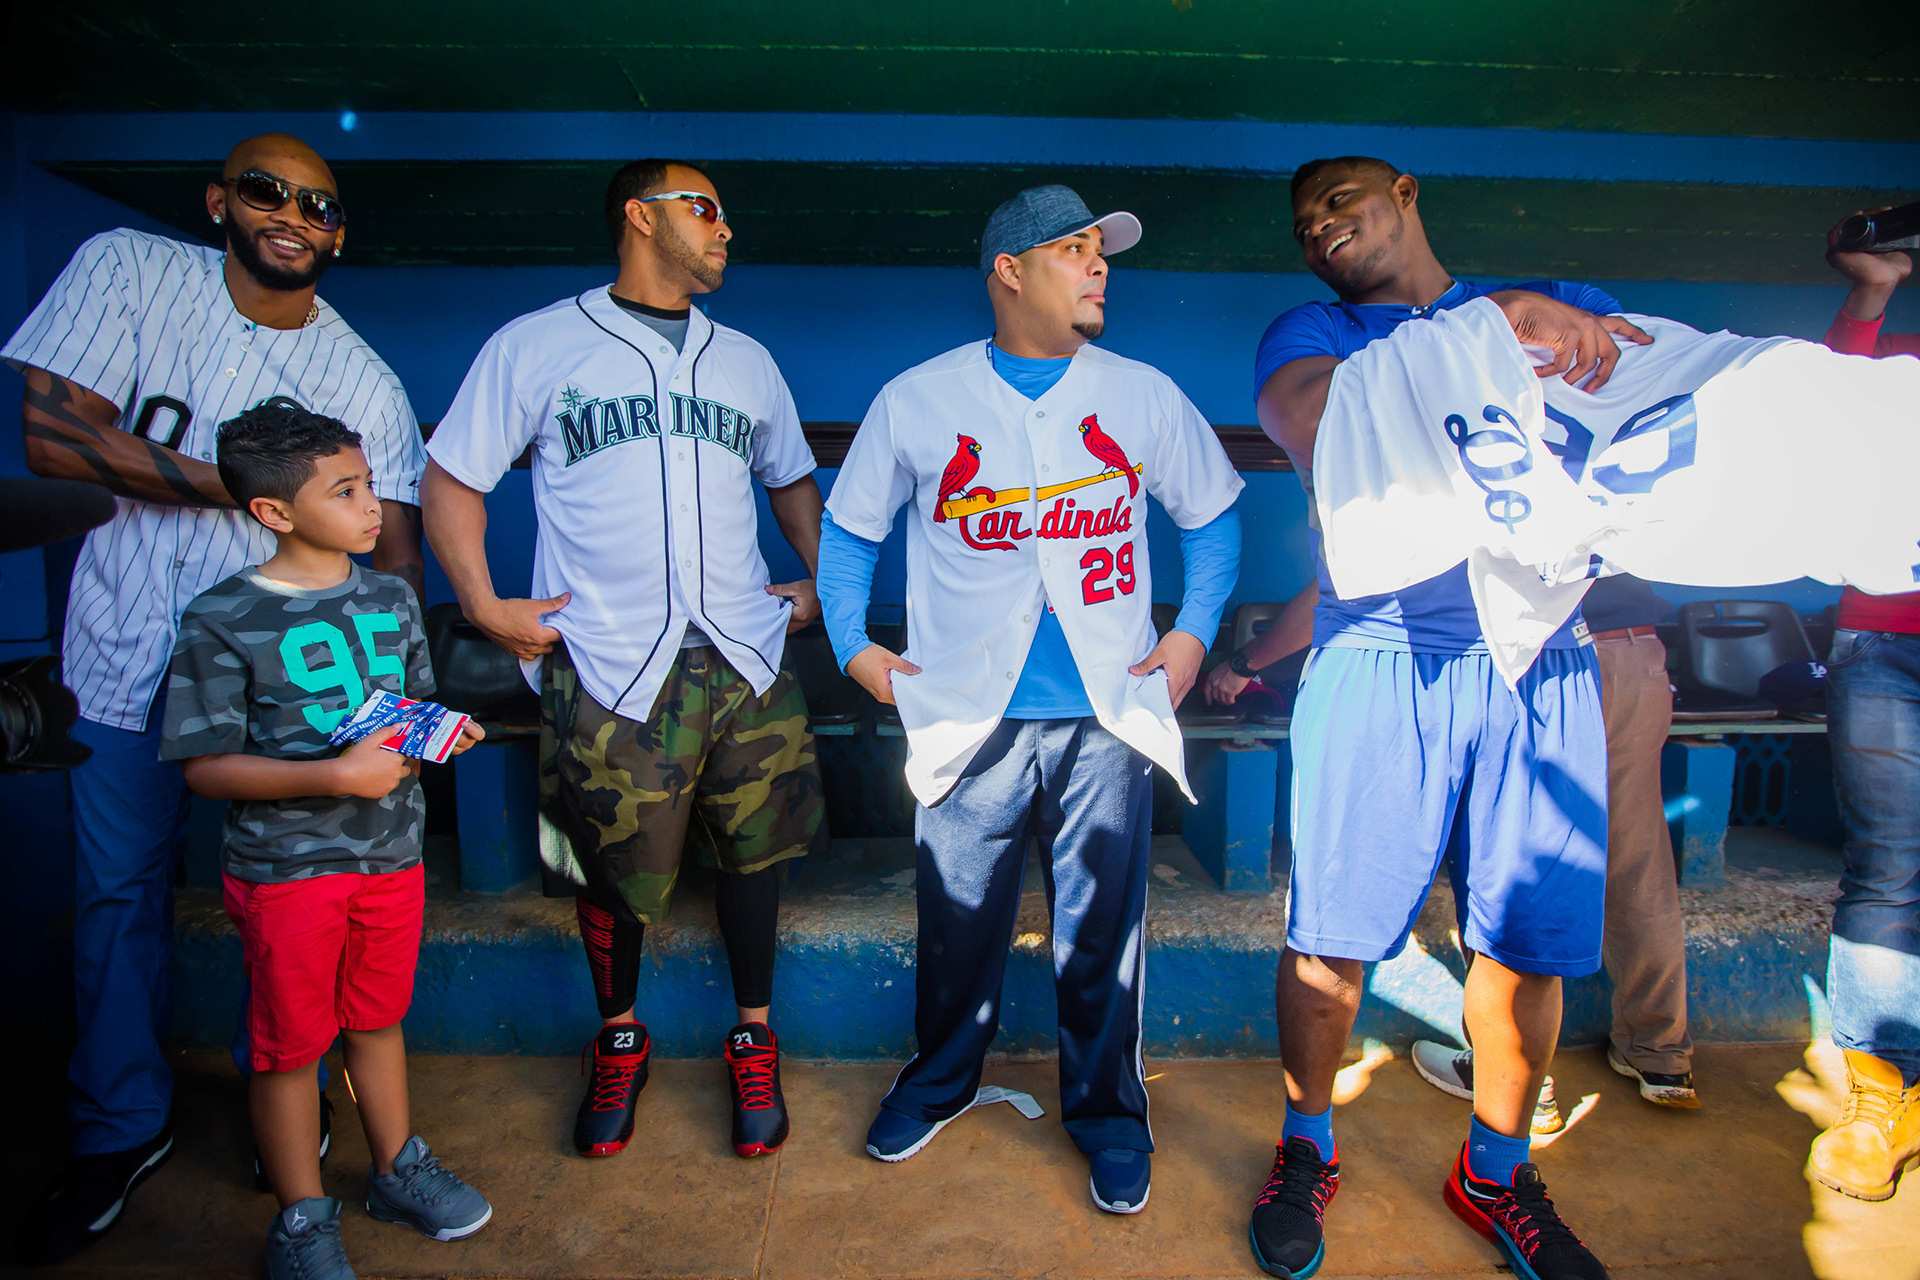 Alexei Ramirez, Nelson Cruz, Brayan Pena and Yasiel Puig before taking the field for the players' clinic.